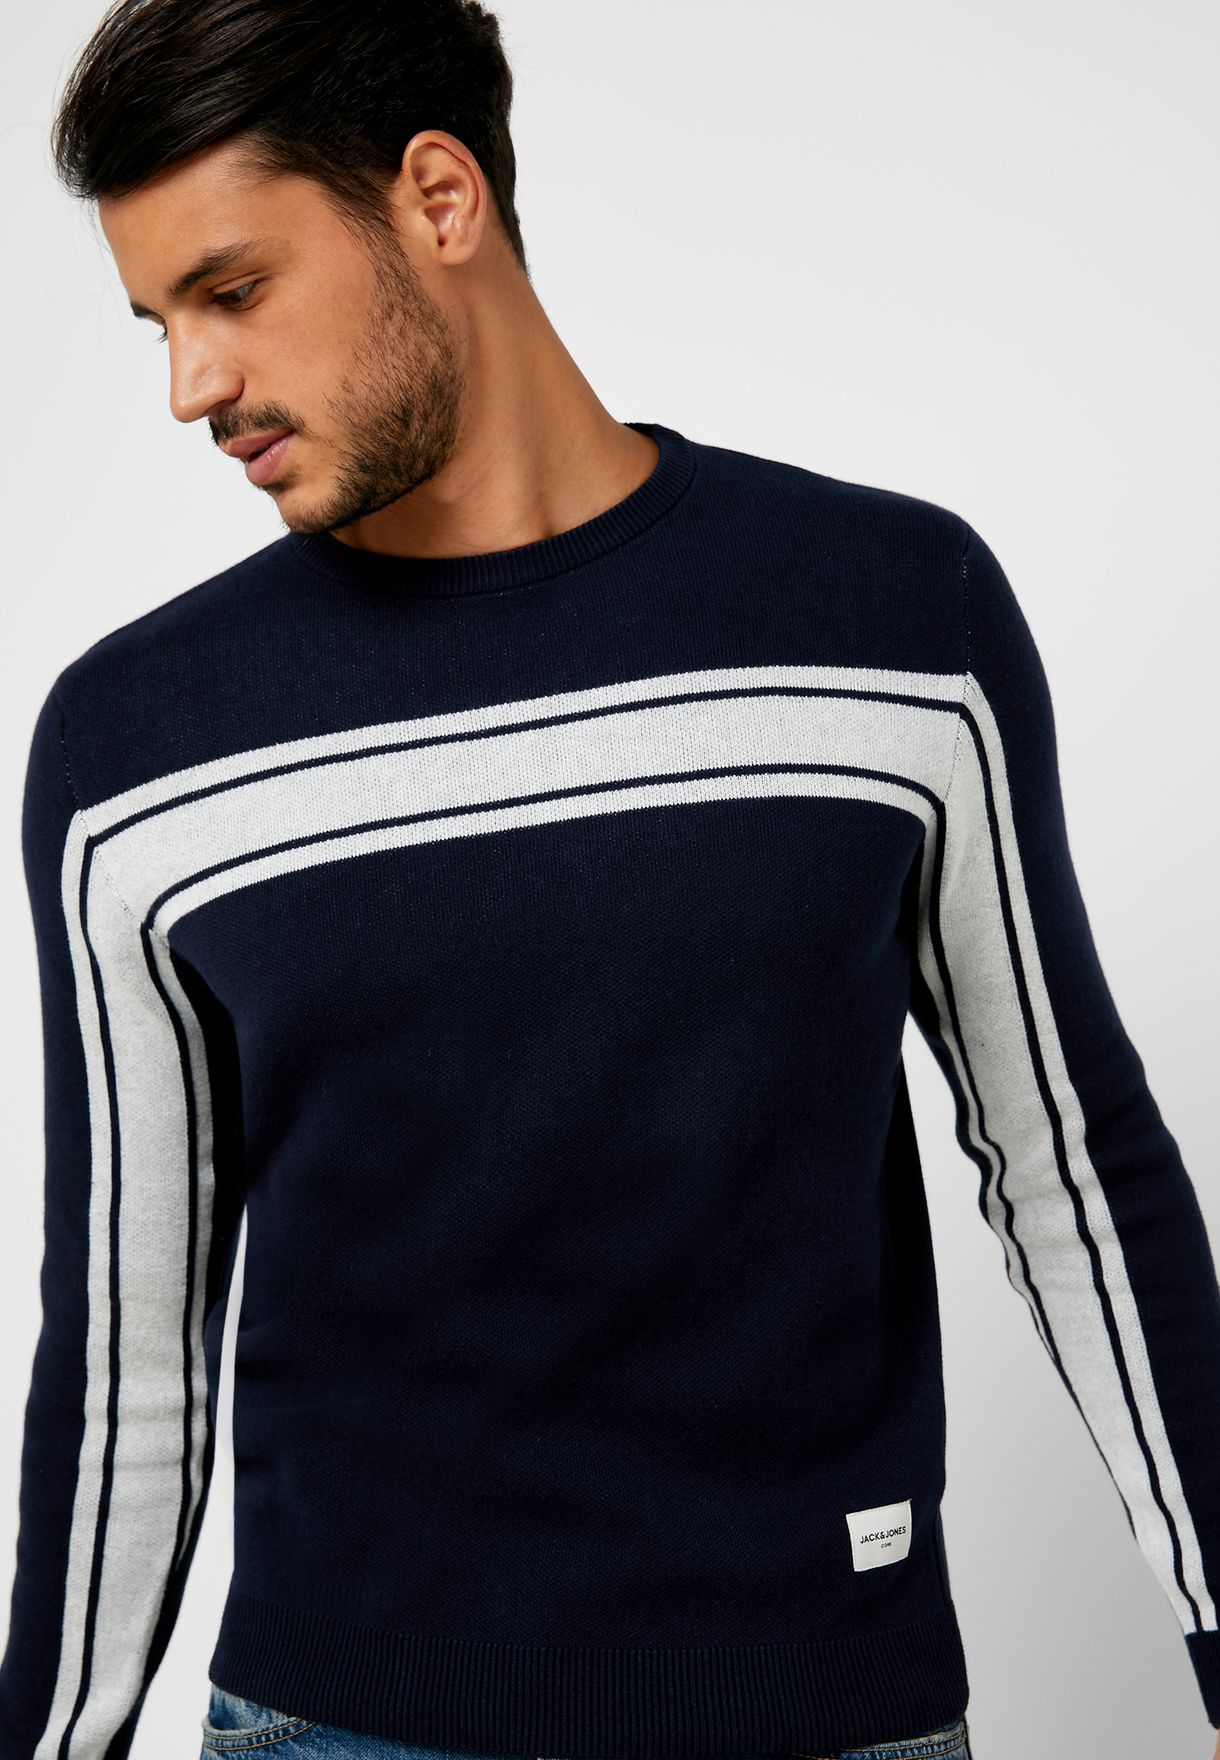 Moree Chest Stripe Knitted Sweater